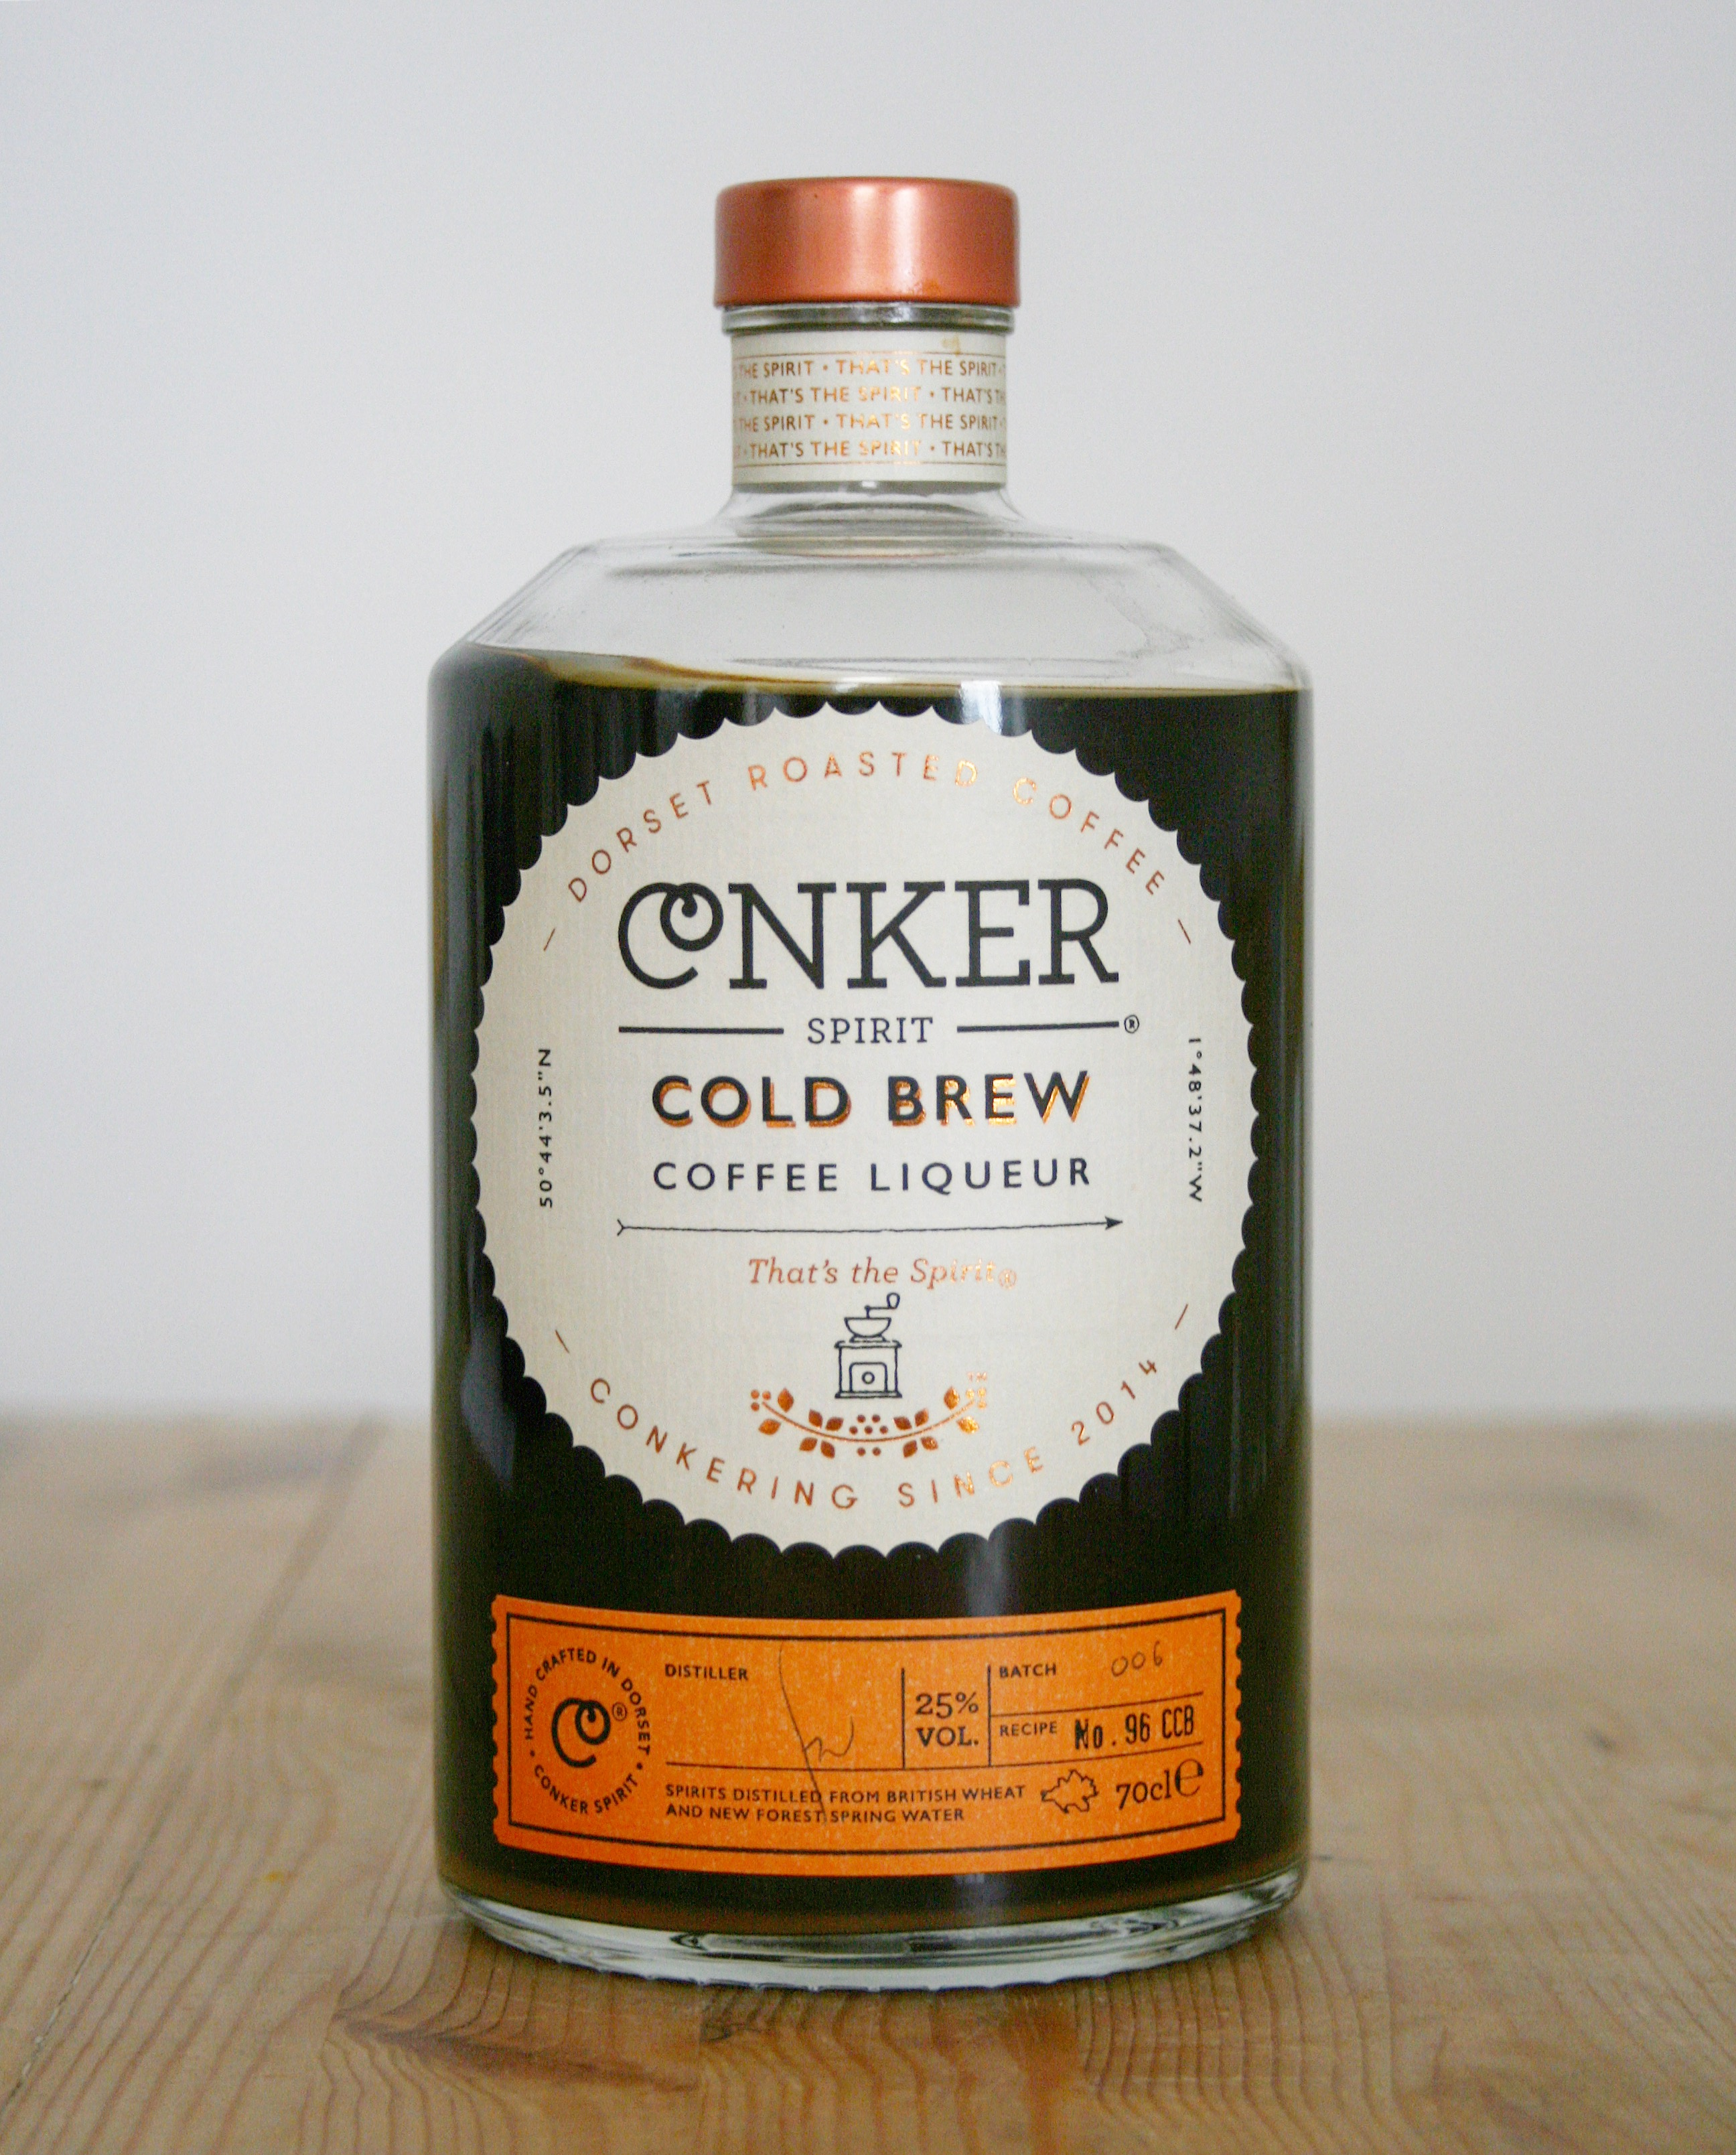 Review of Conker Spirit's Cold Brew liquer